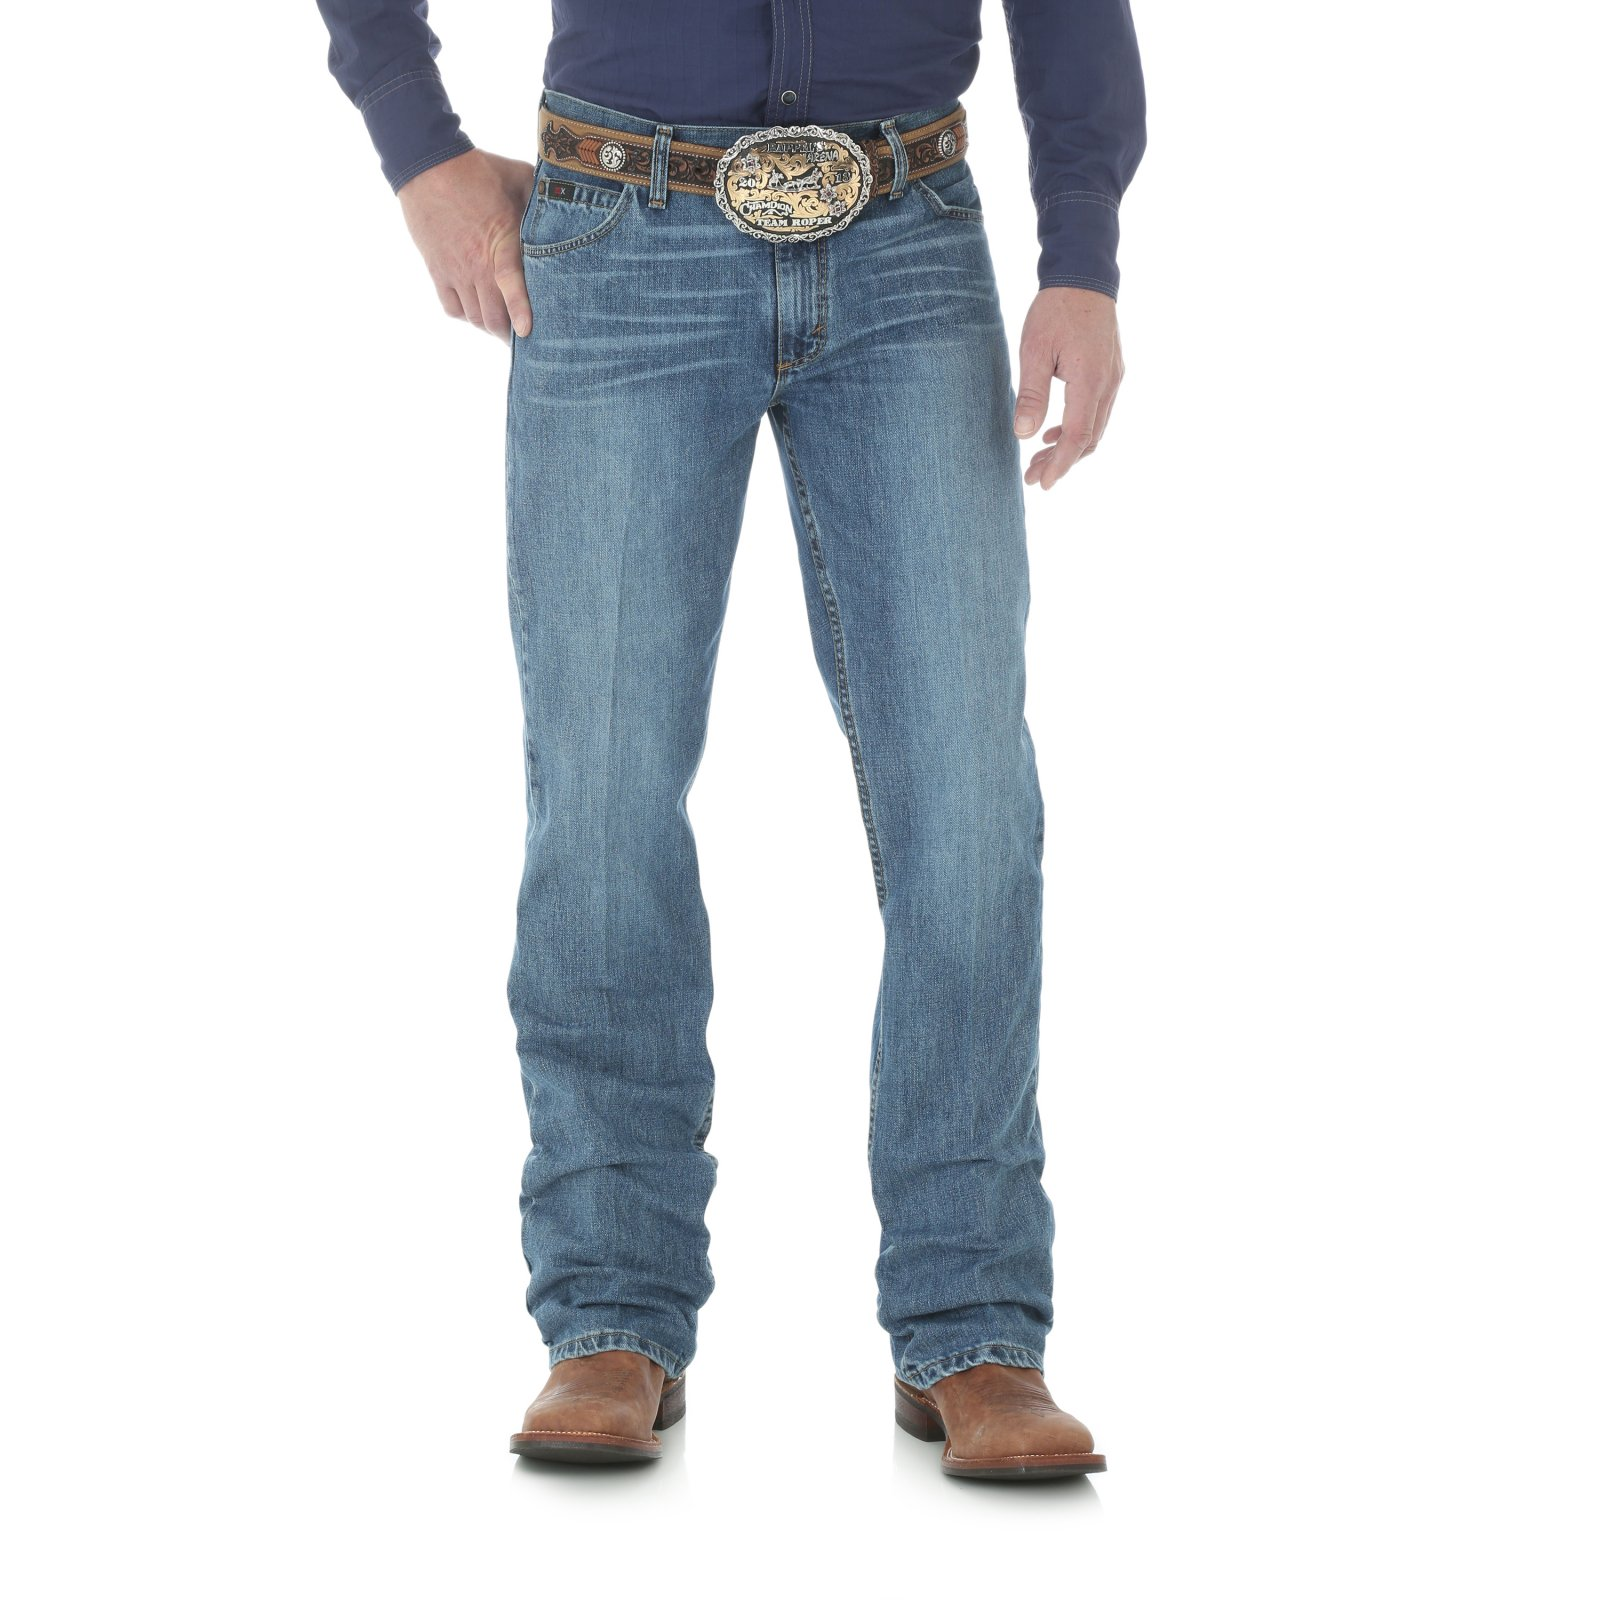 Men's 20X Competition Slim Jean from Wrangler